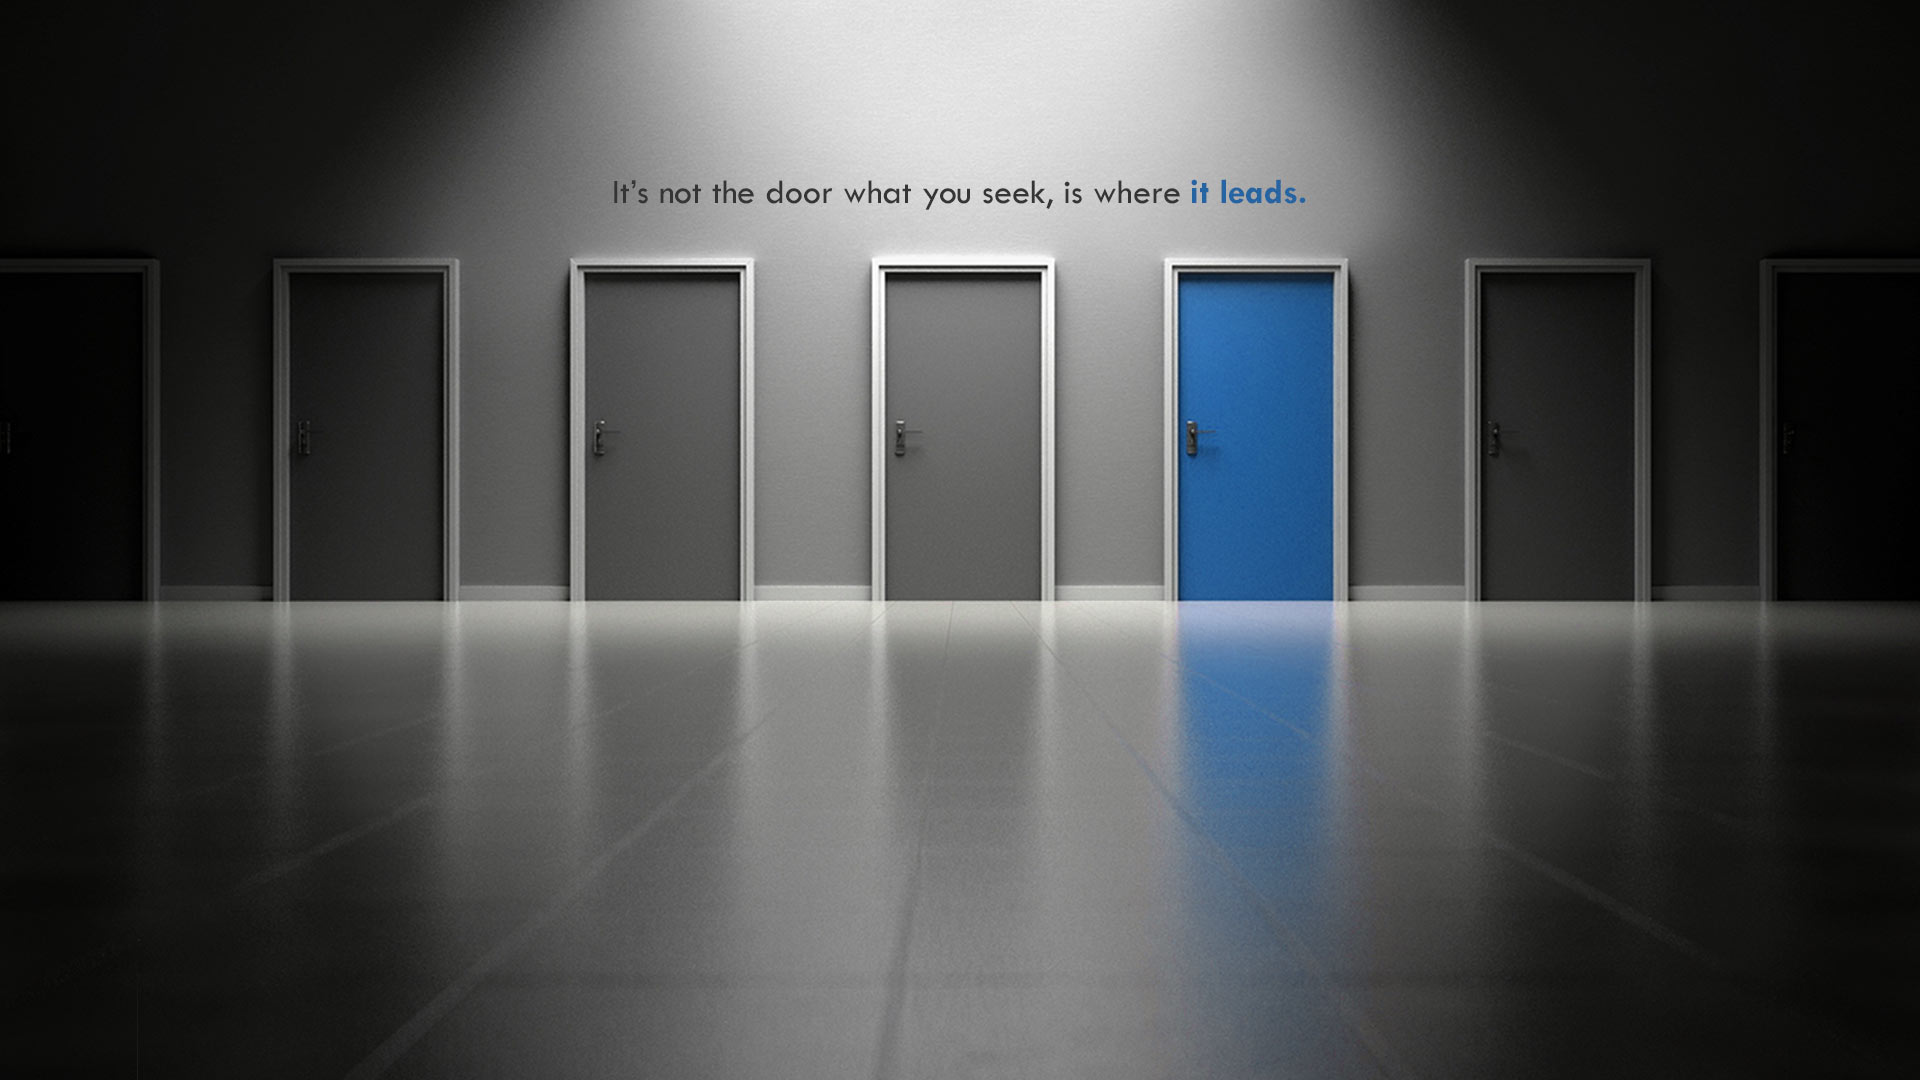 Are you ready to open that door?